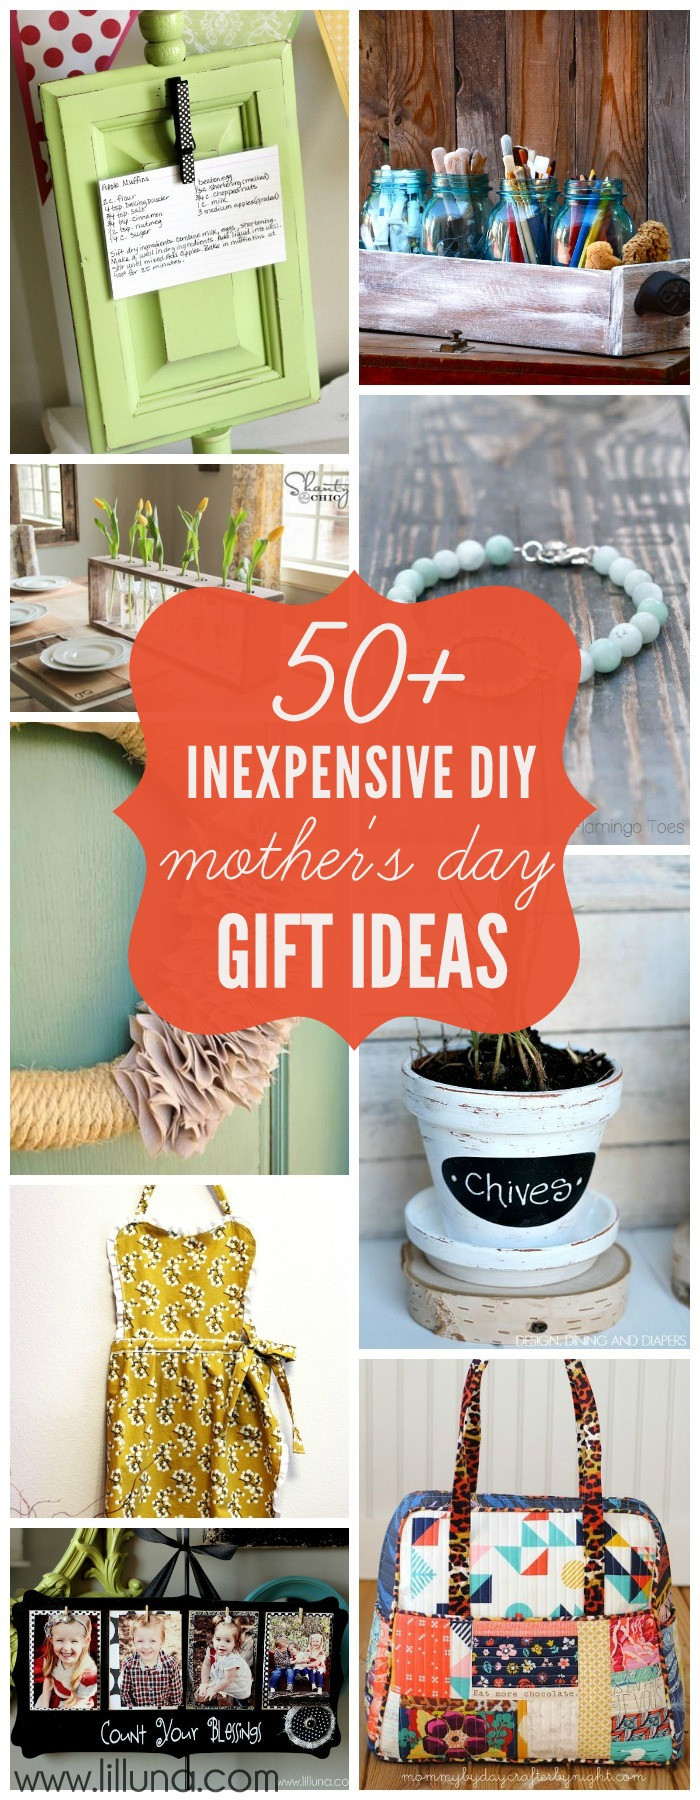 Best ideas about Cheap Gift Ideas . Save or Pin Inexpensive DIY Mother s Day Gift Ideas Now.